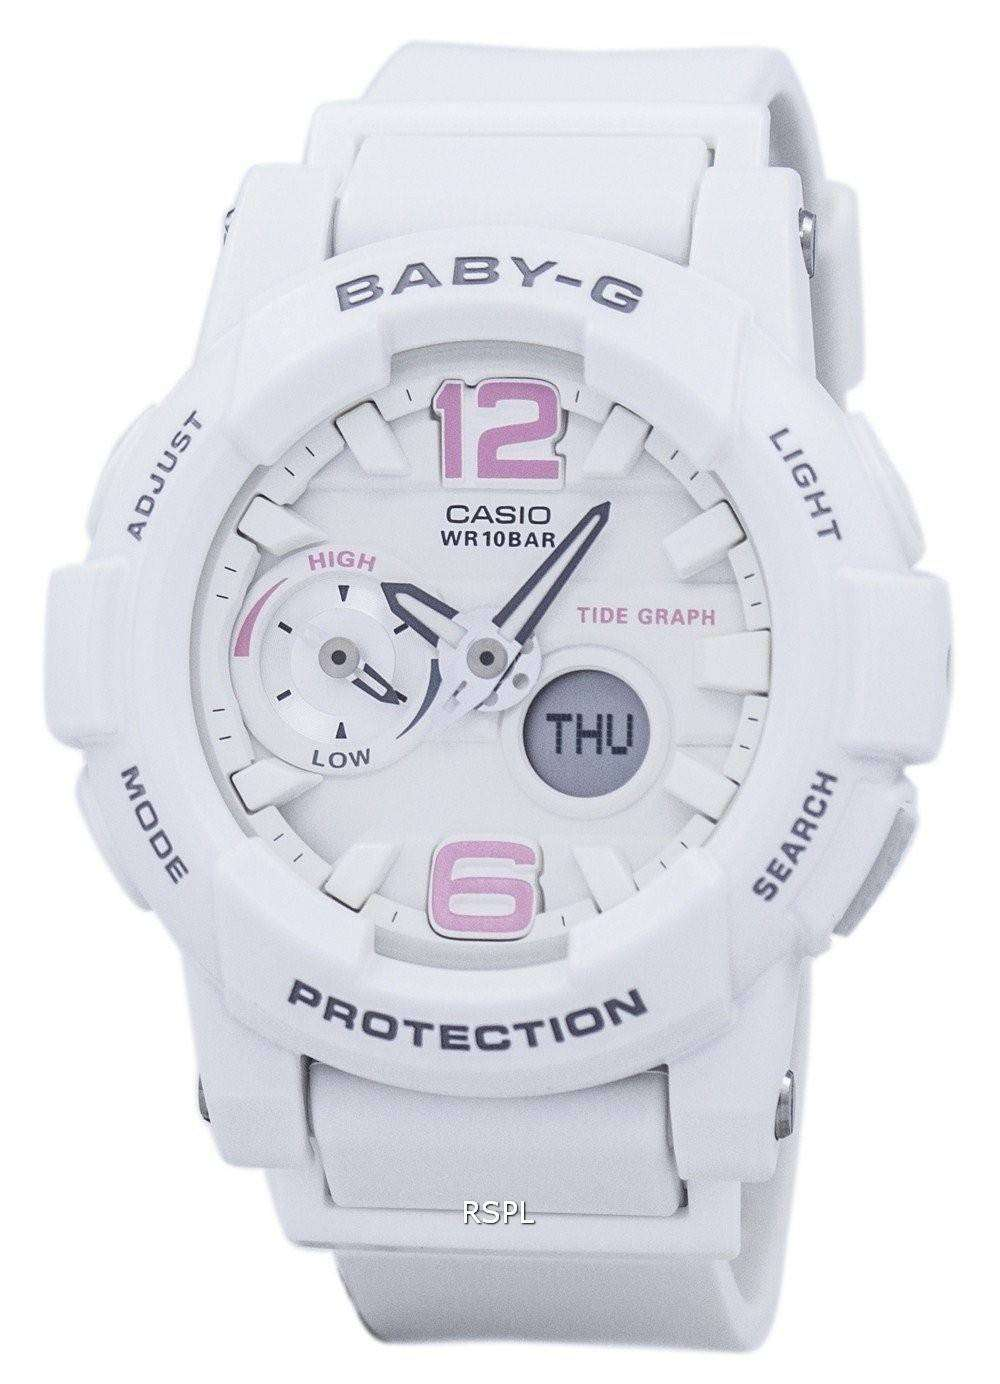 32175fbdc25 Casio Baby-G Shock Resistant Tide Graph Analog Digital BGA-180BE-7B Women s  Watch